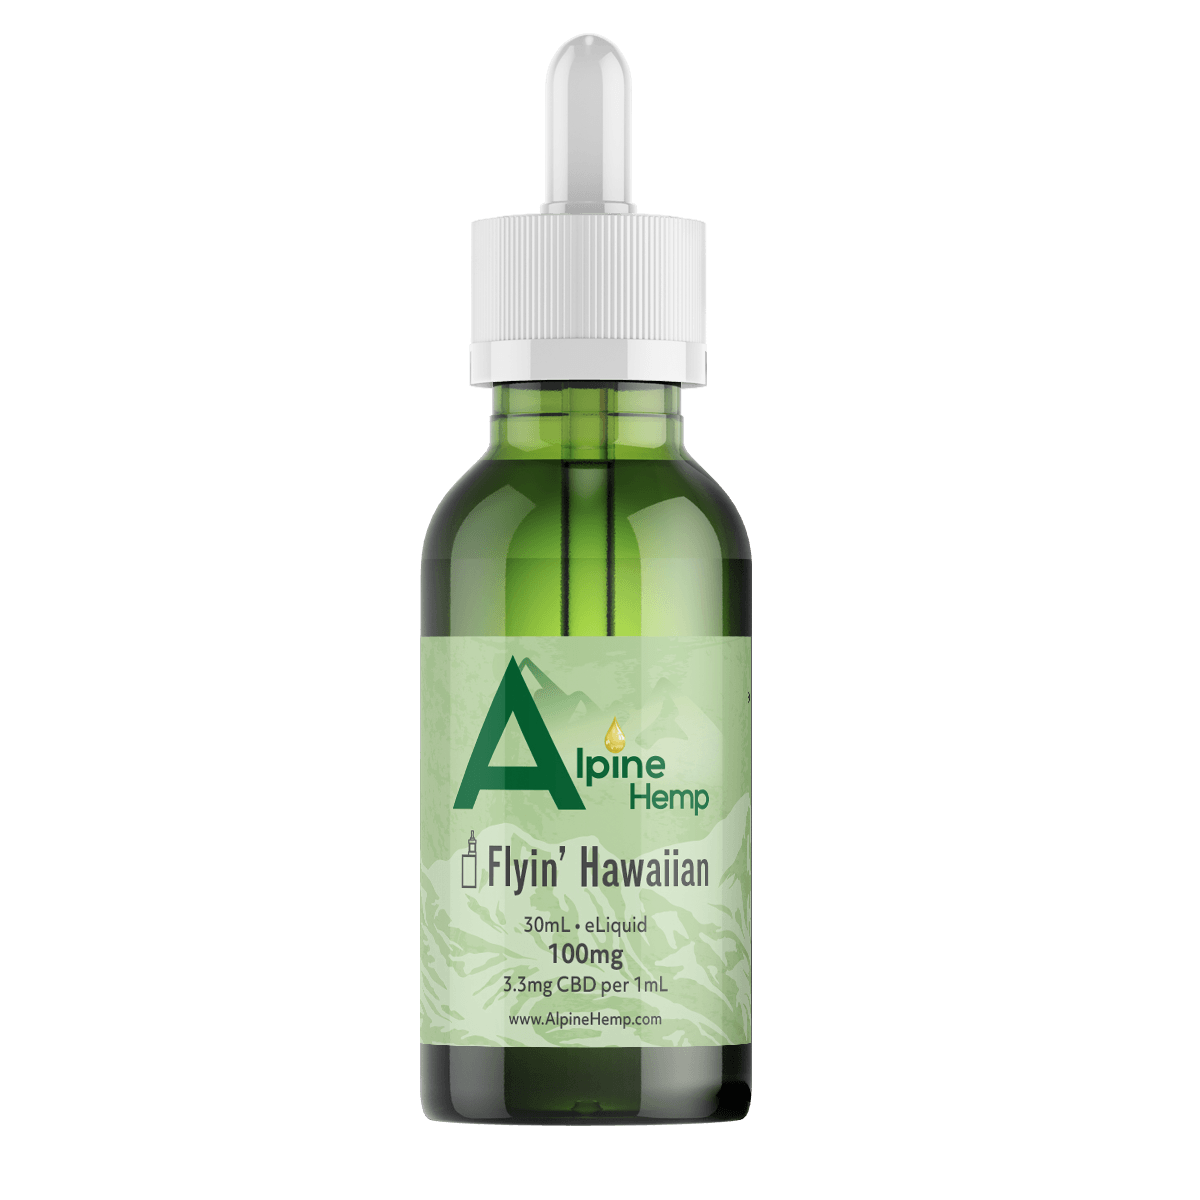 alpine hemp eliquid, vape refill, vape, hemp extract, vape juice, tropical vape